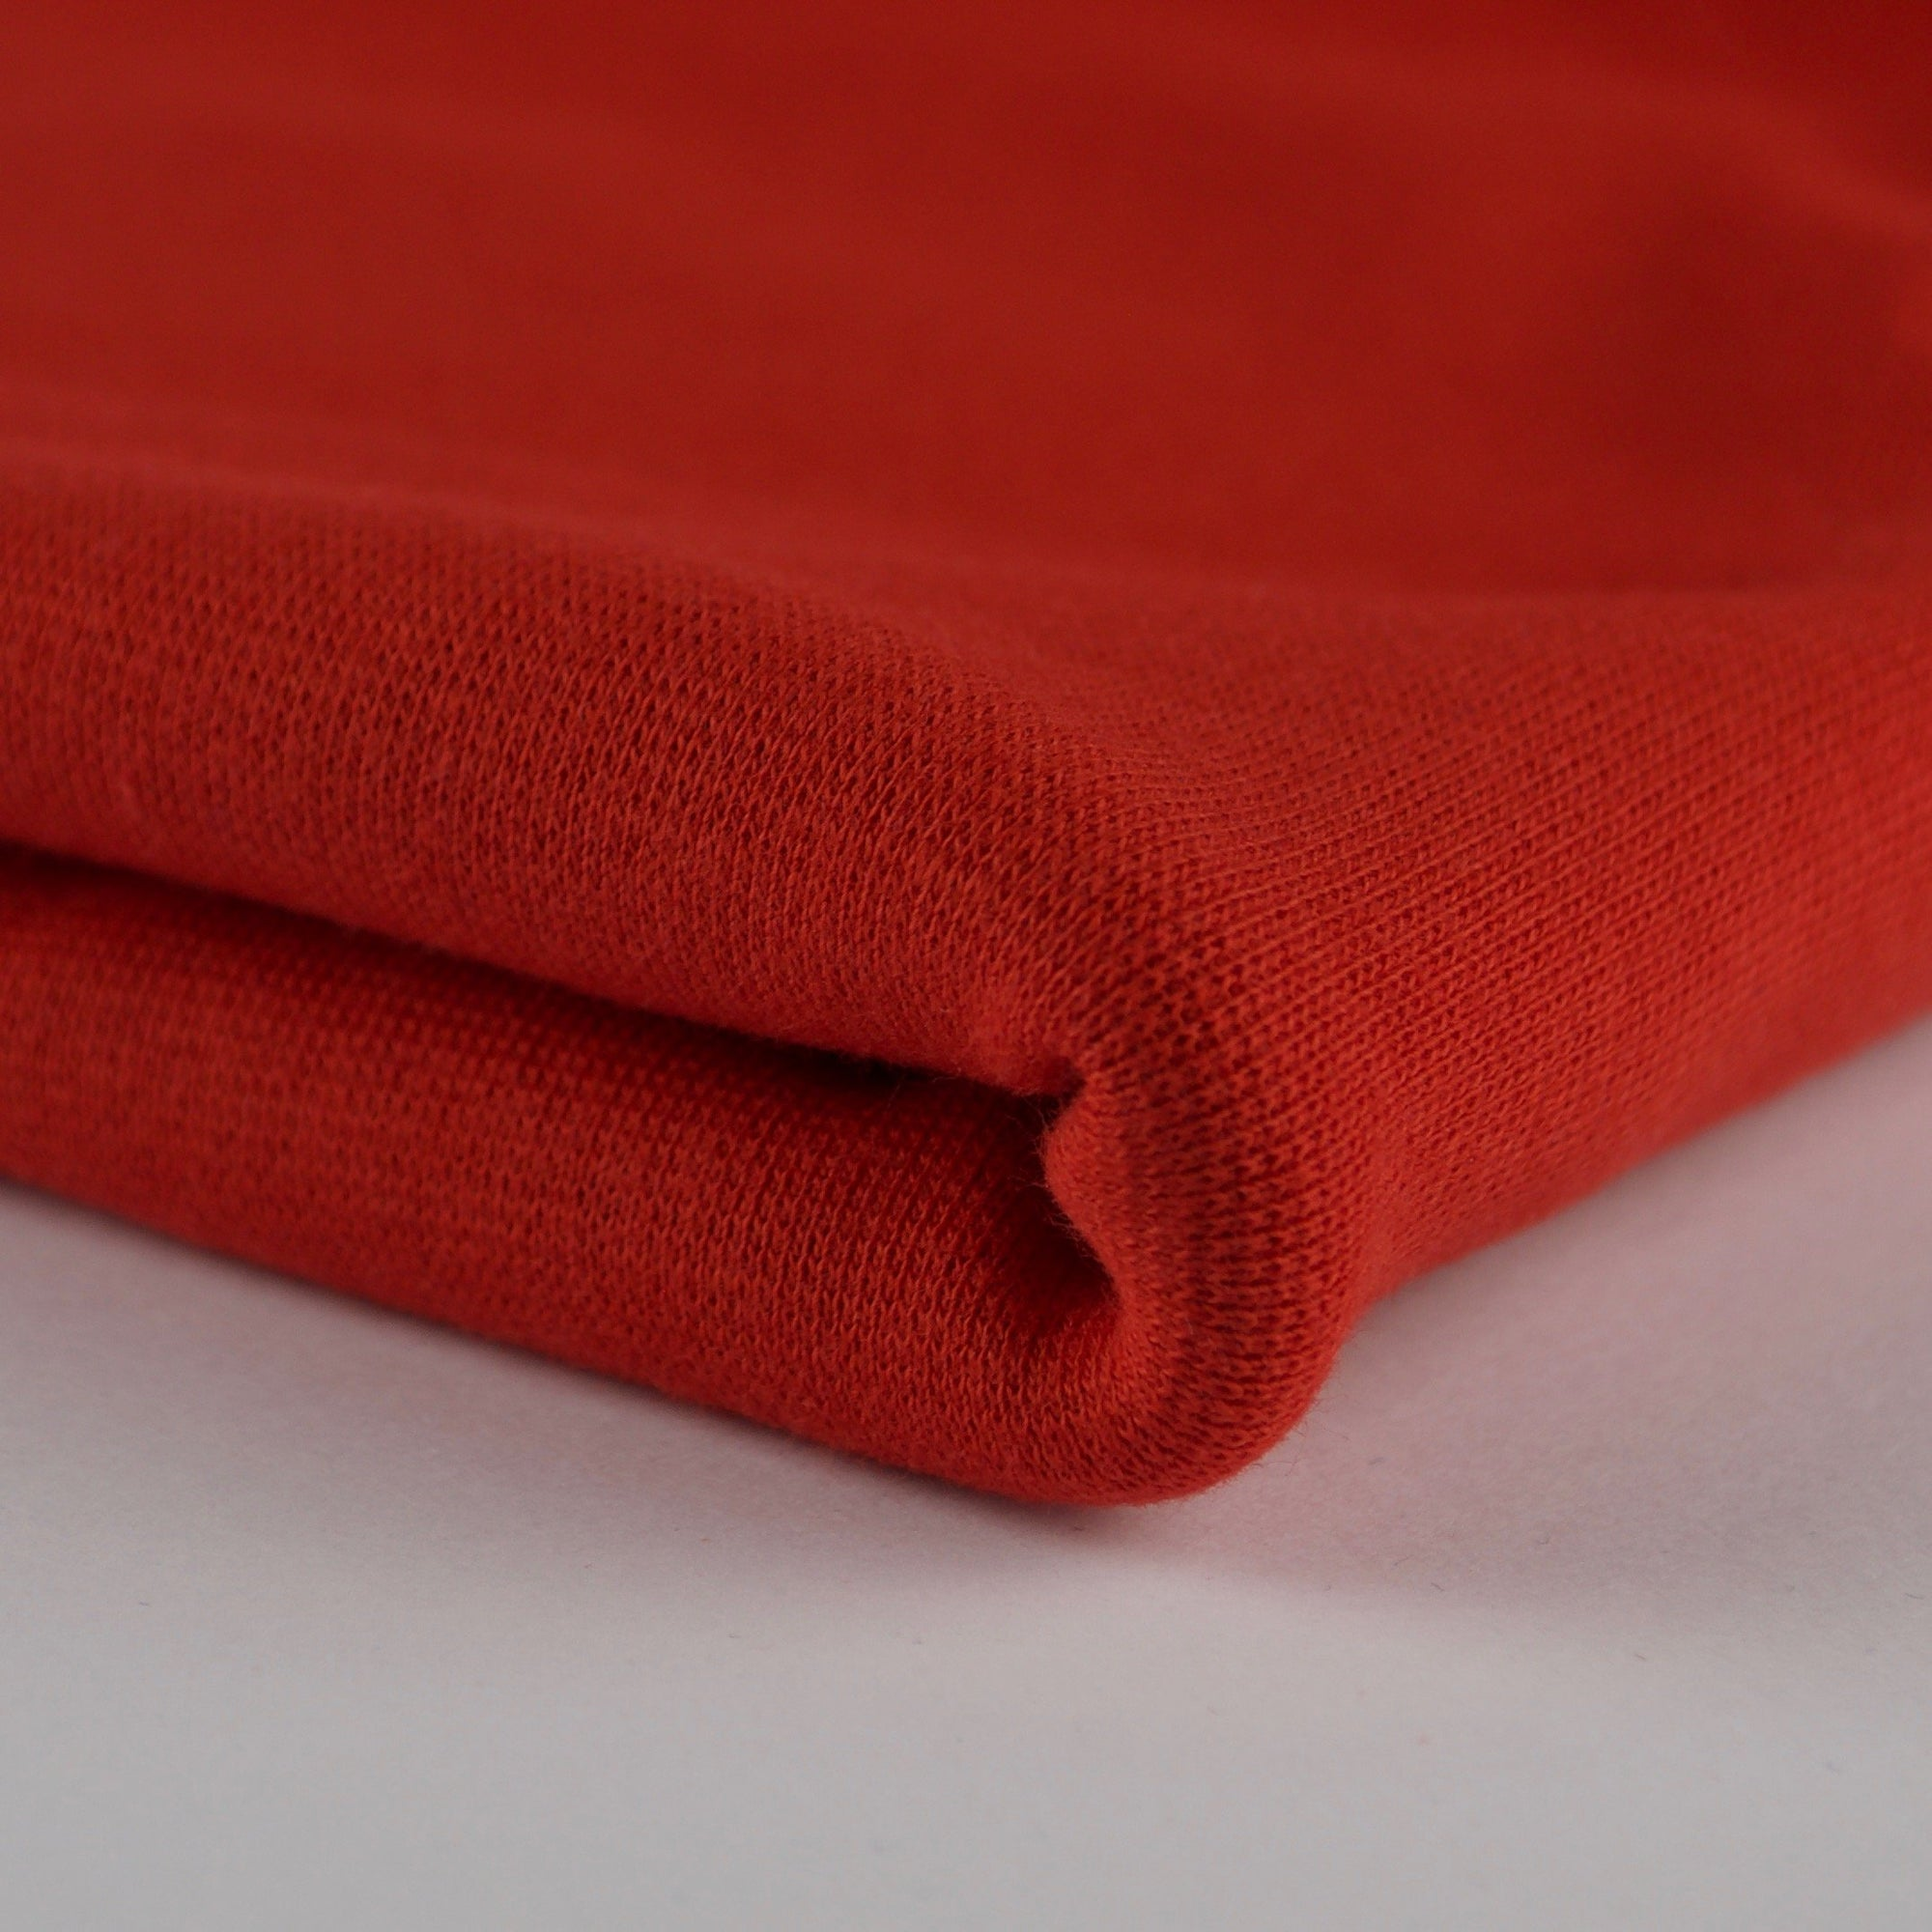 Warm Red Ribbing - MaaiDesign